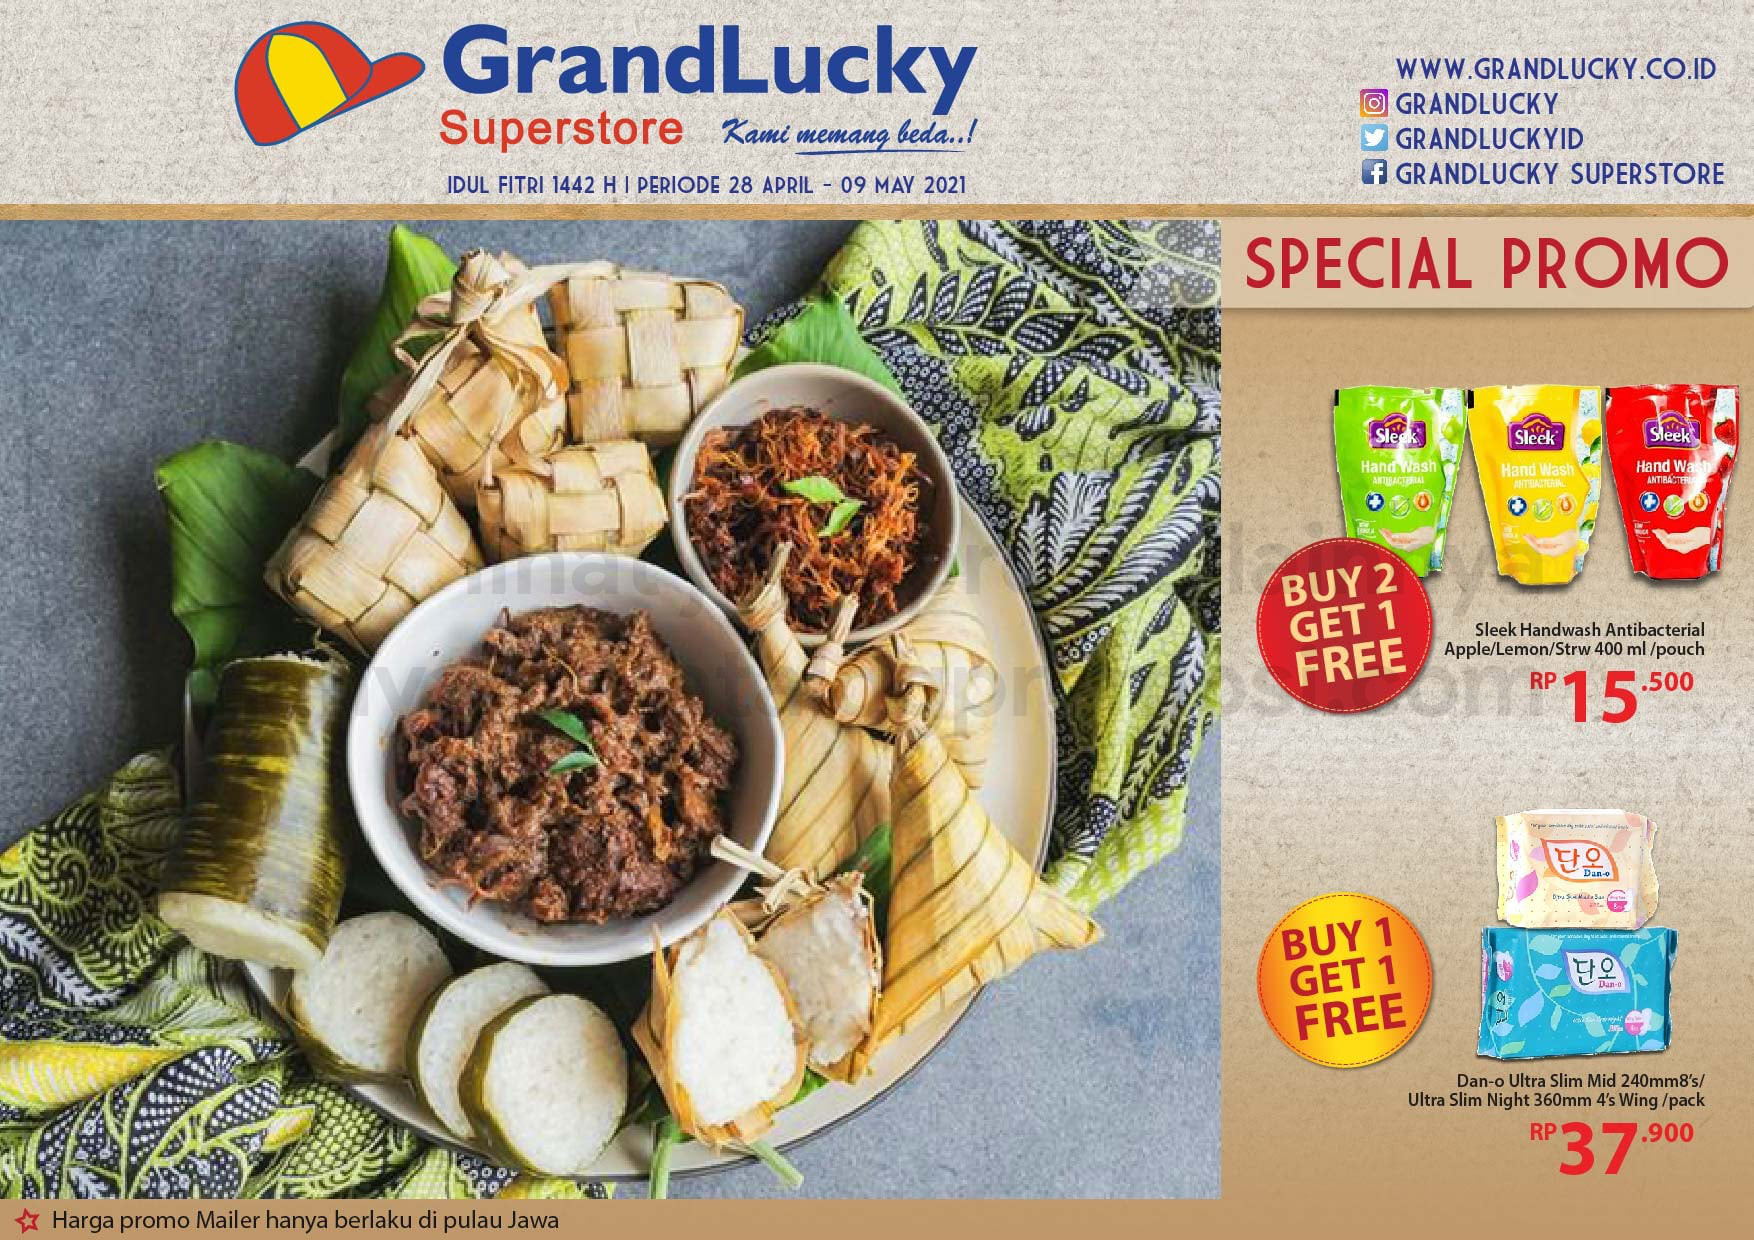 Promo GRAND LUCKY Superstore Katalog Mingguan Periode 28 April - 09 Mei 2021